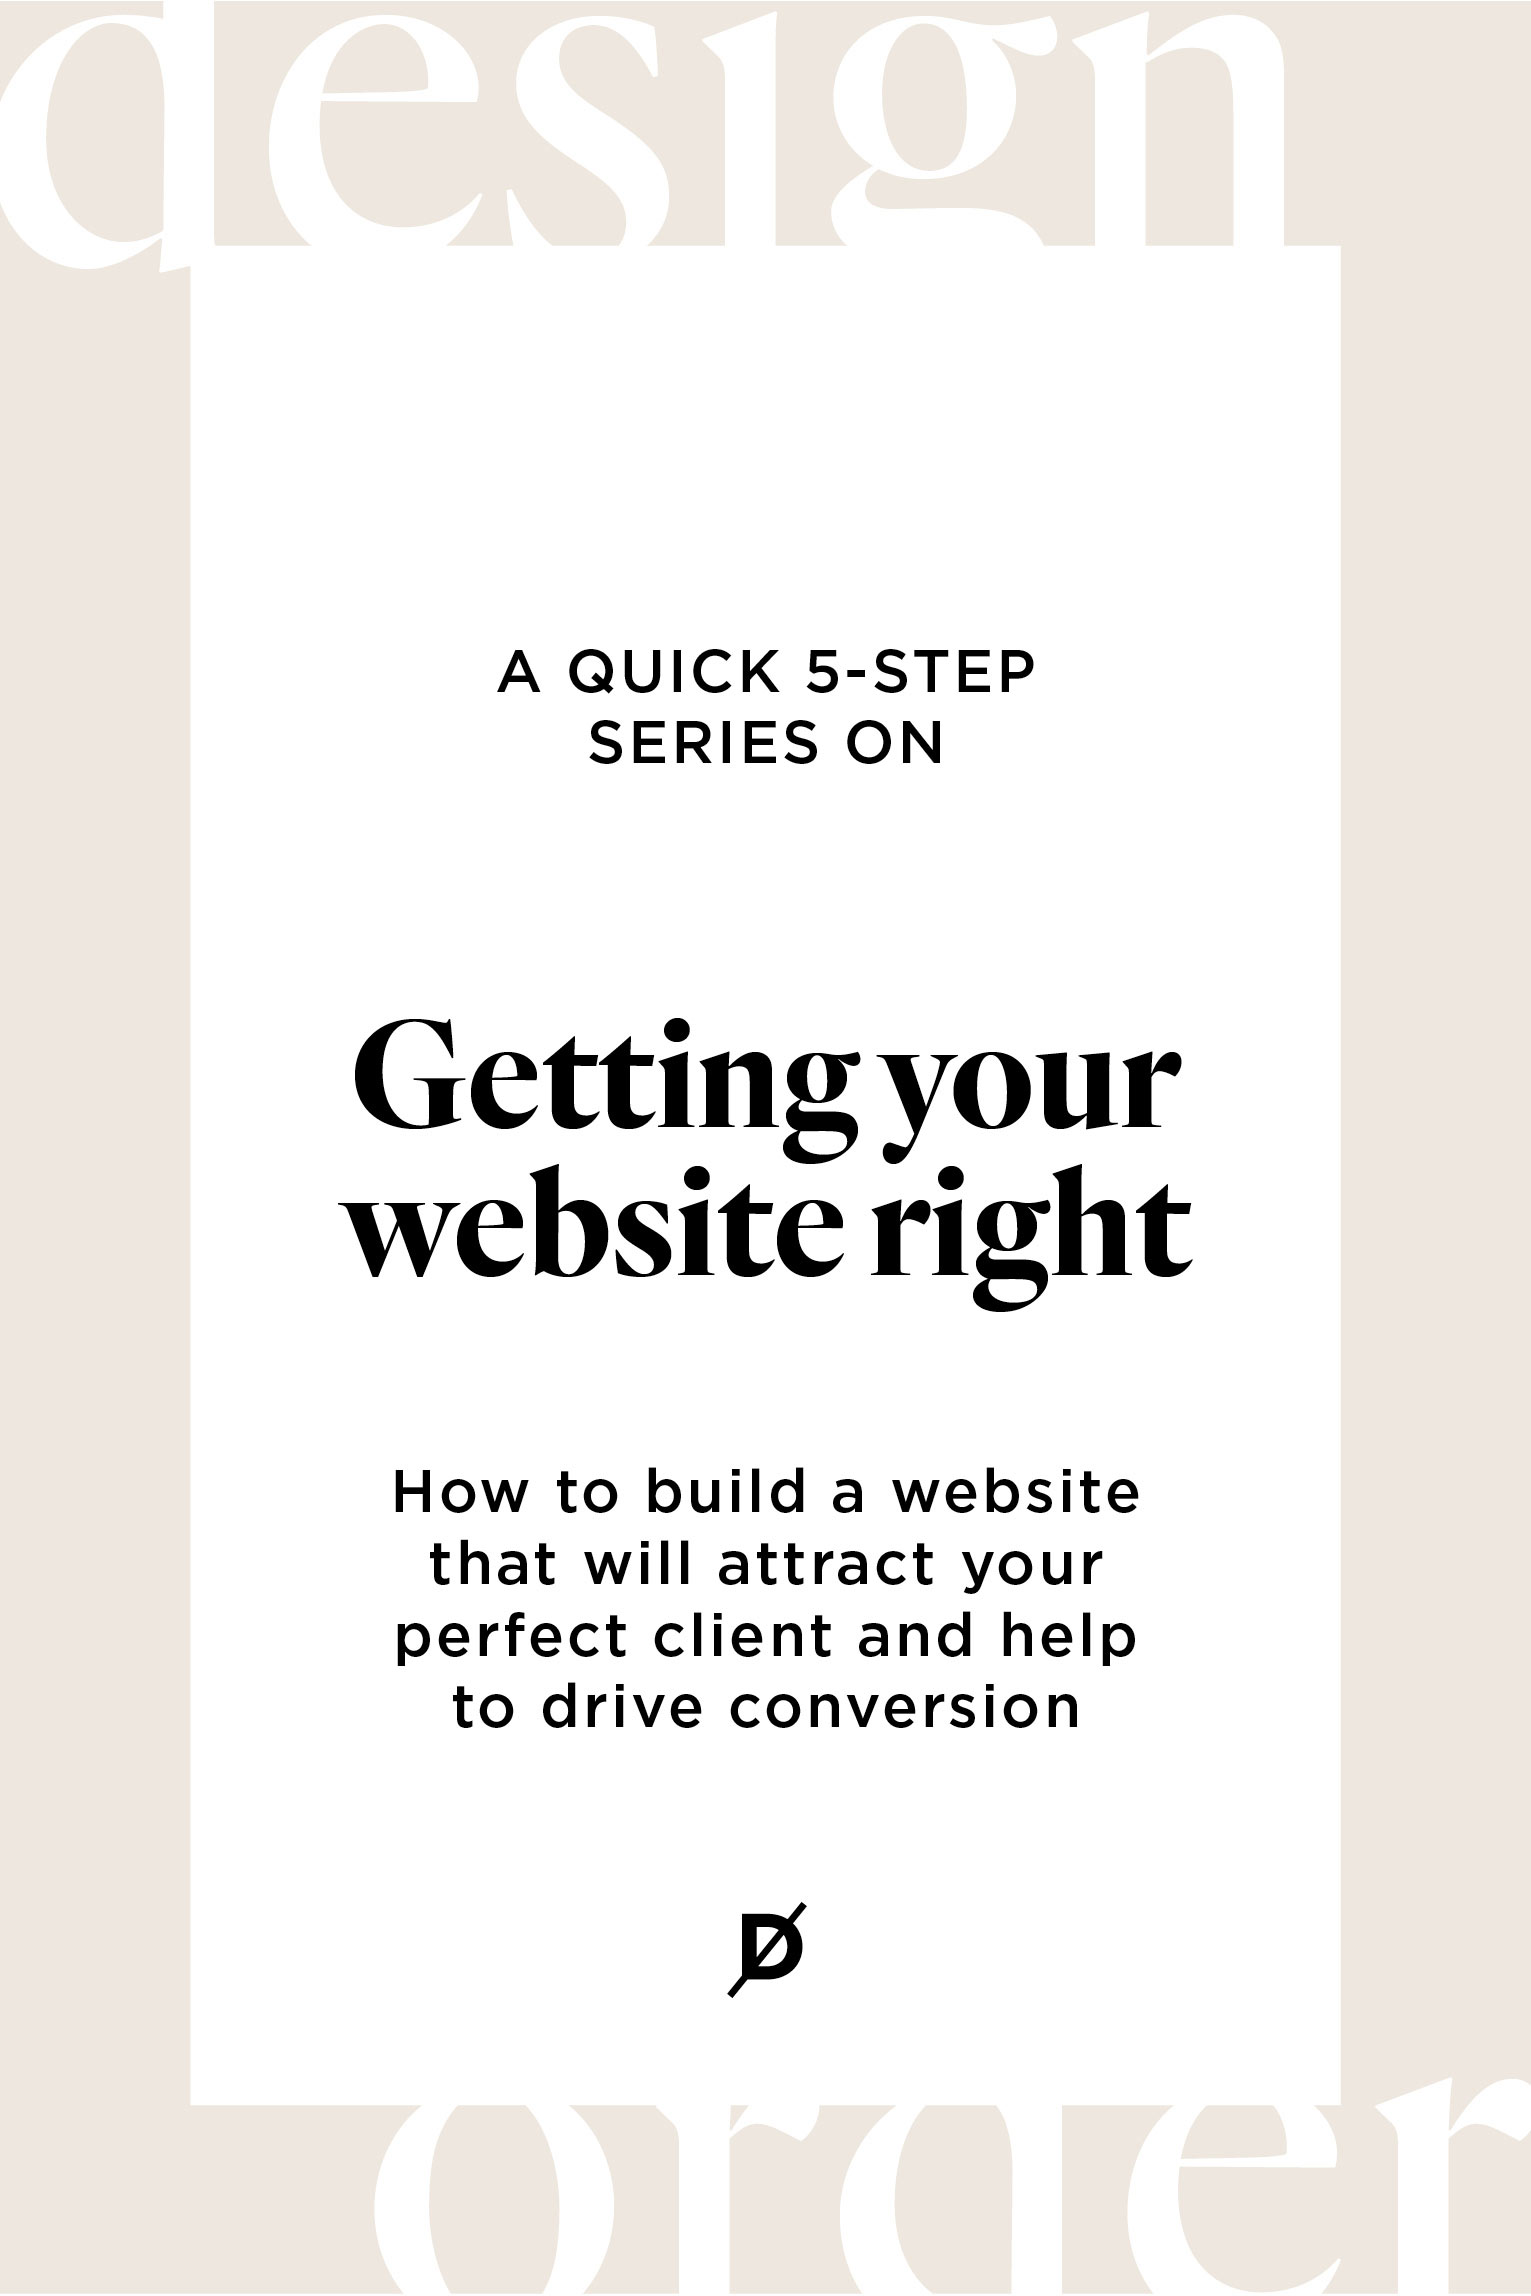 Getting your website right